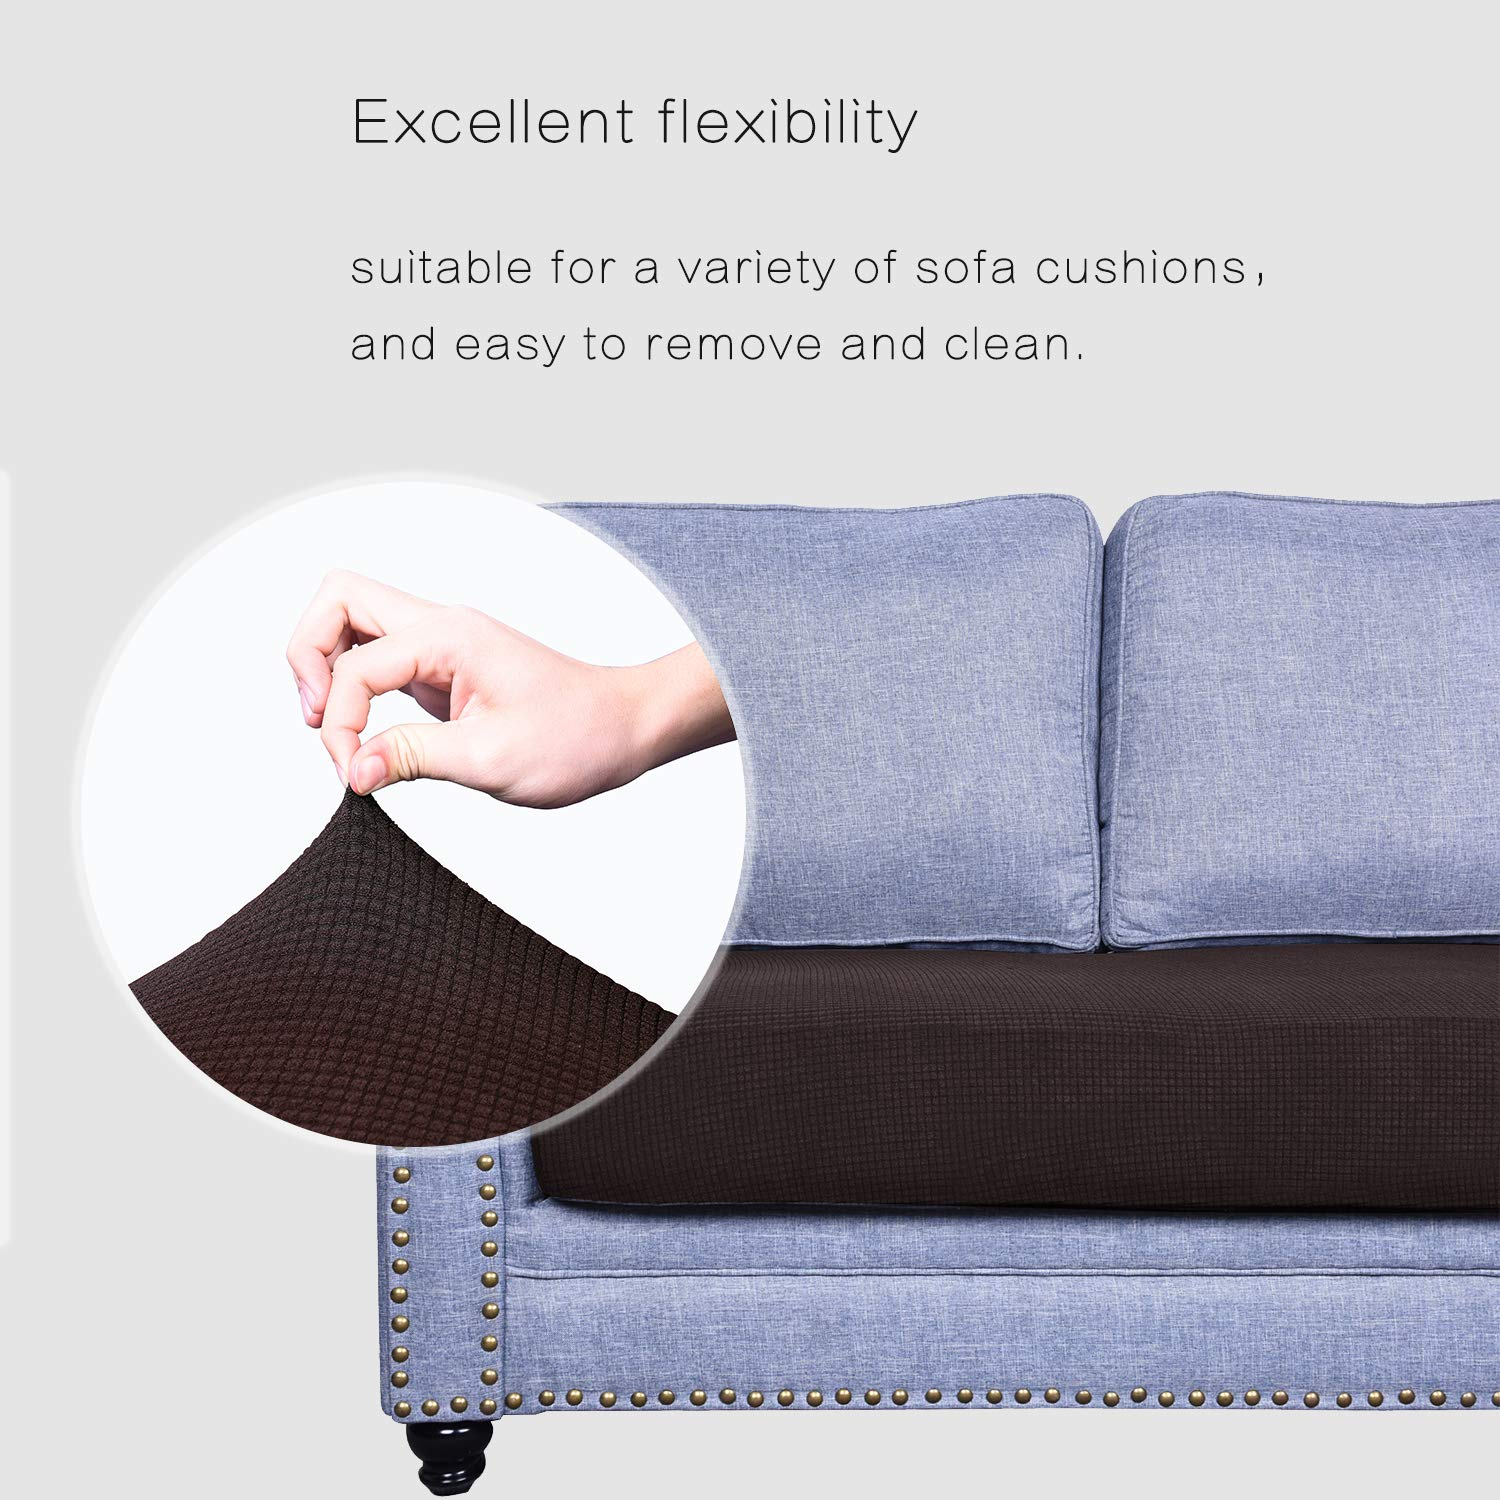 High Stretch Jacquard Fabric Sofa Seat Slipcover Protectors Granbest Premium Water-Repellent Couch Seat Cushion Cover Chocolate, XL Sofa Cushion